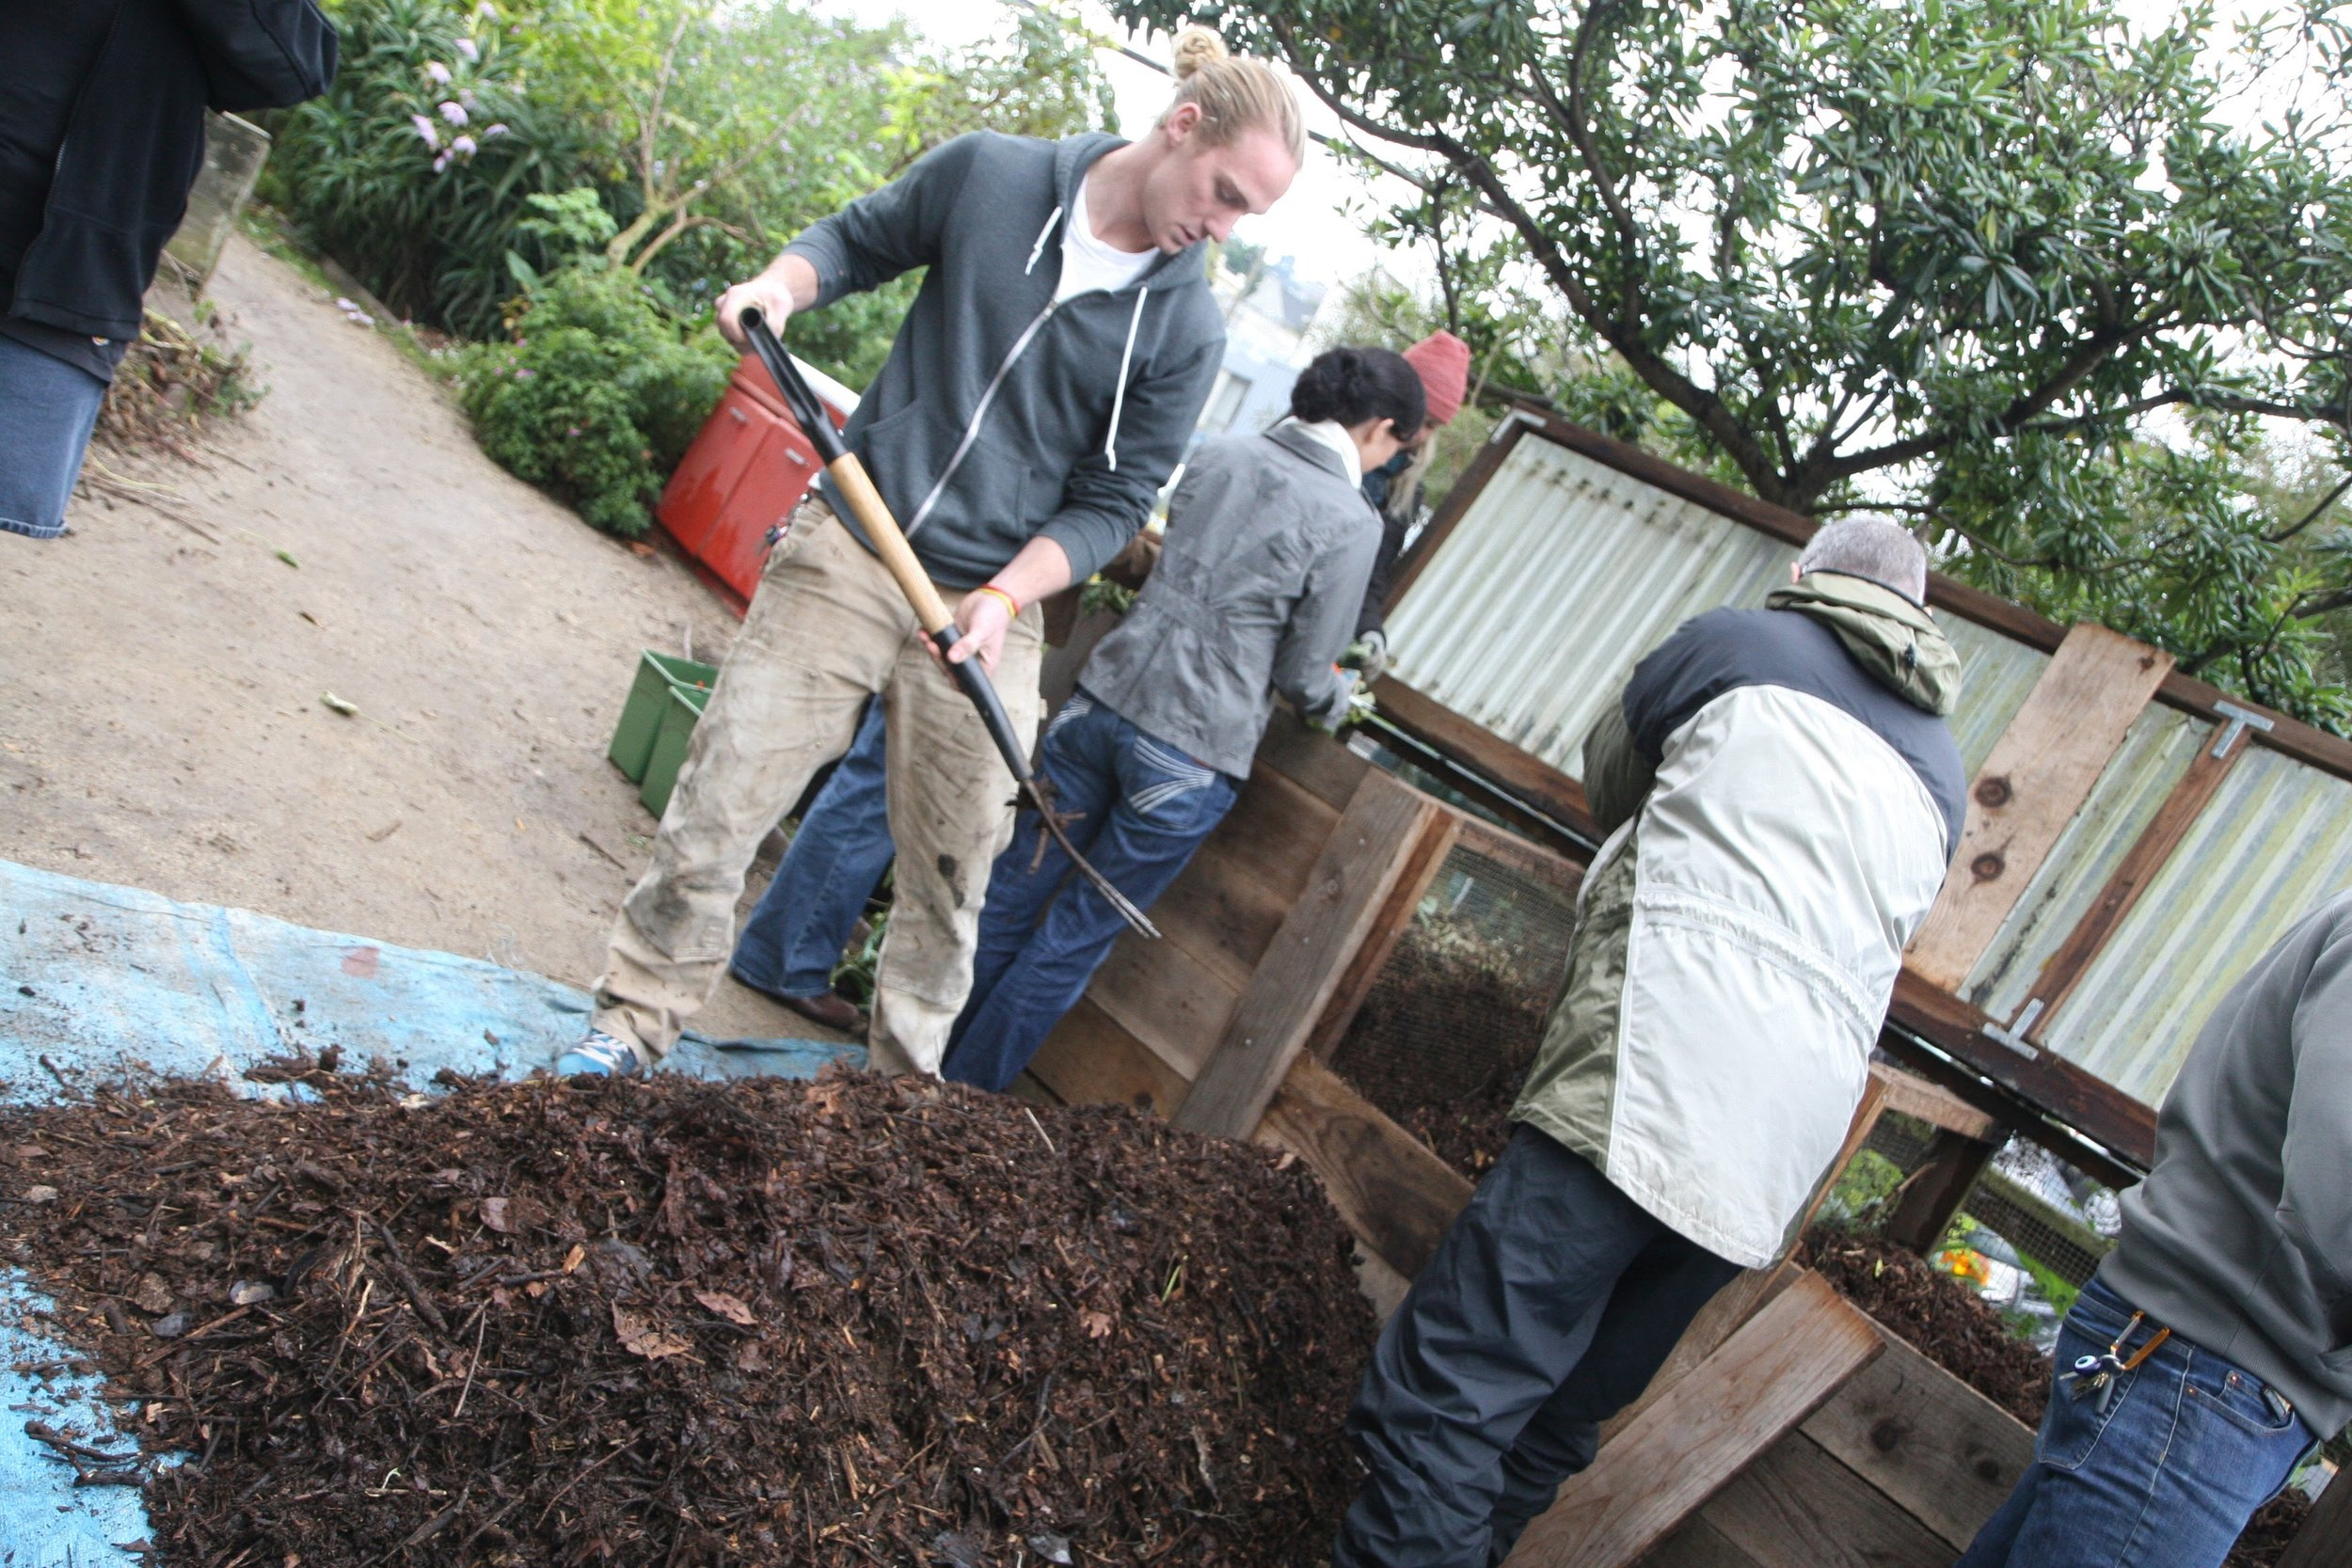 Turning the nearly-done compost.